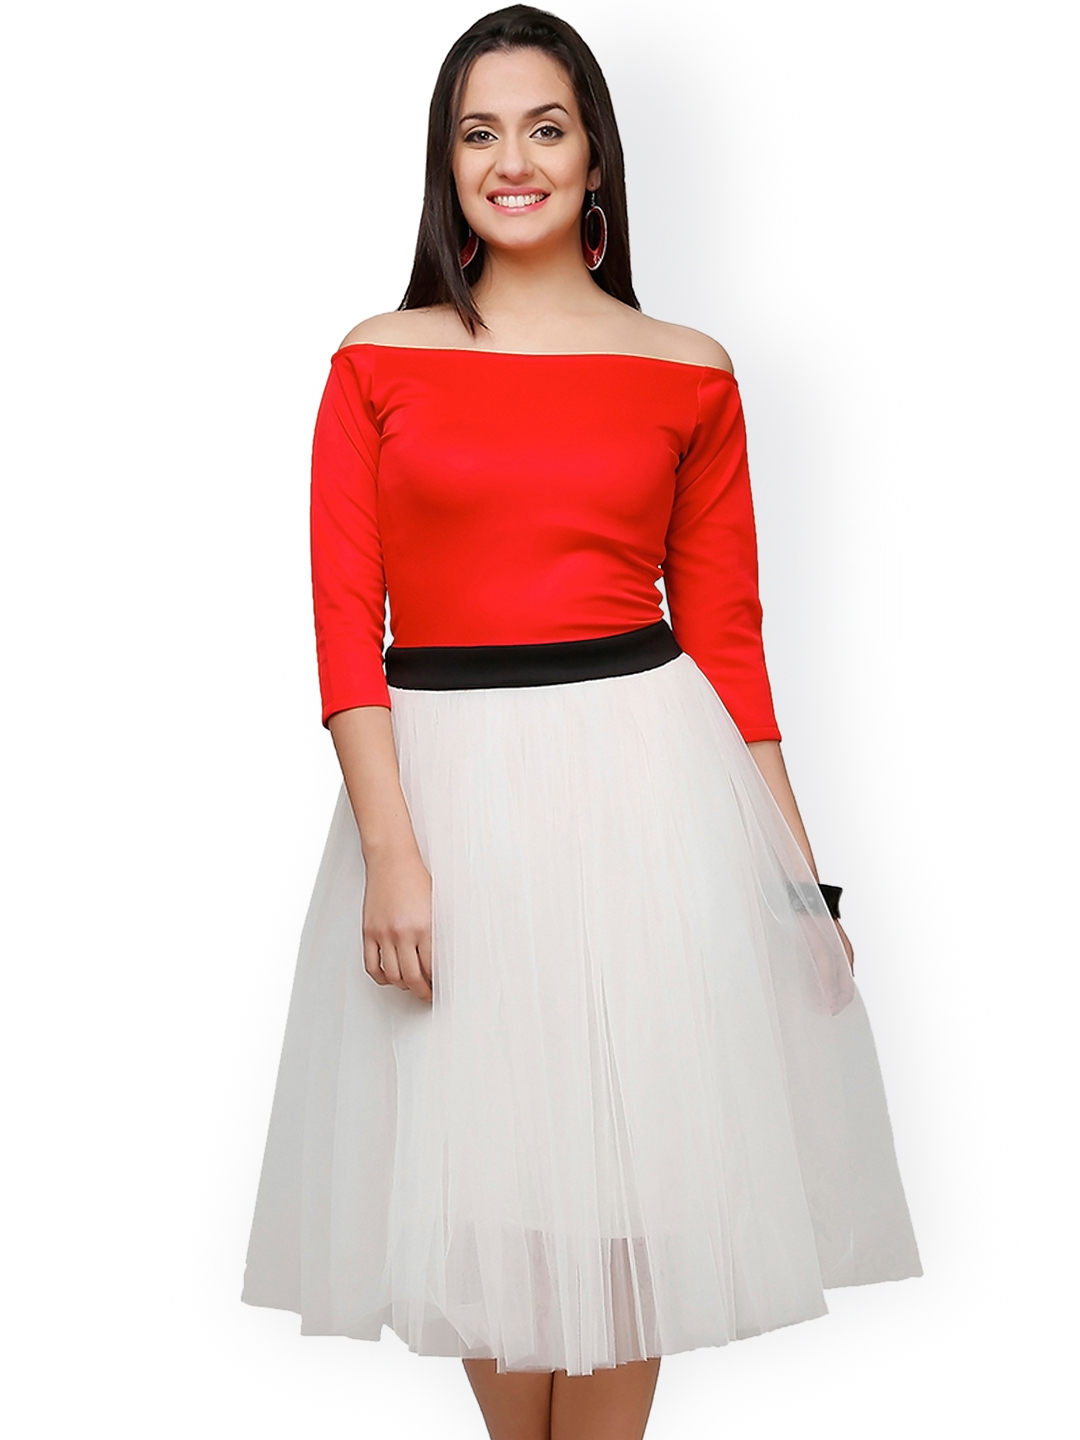 Buy Eavan Red & White Fit & Flare Dress - Dresses for ...